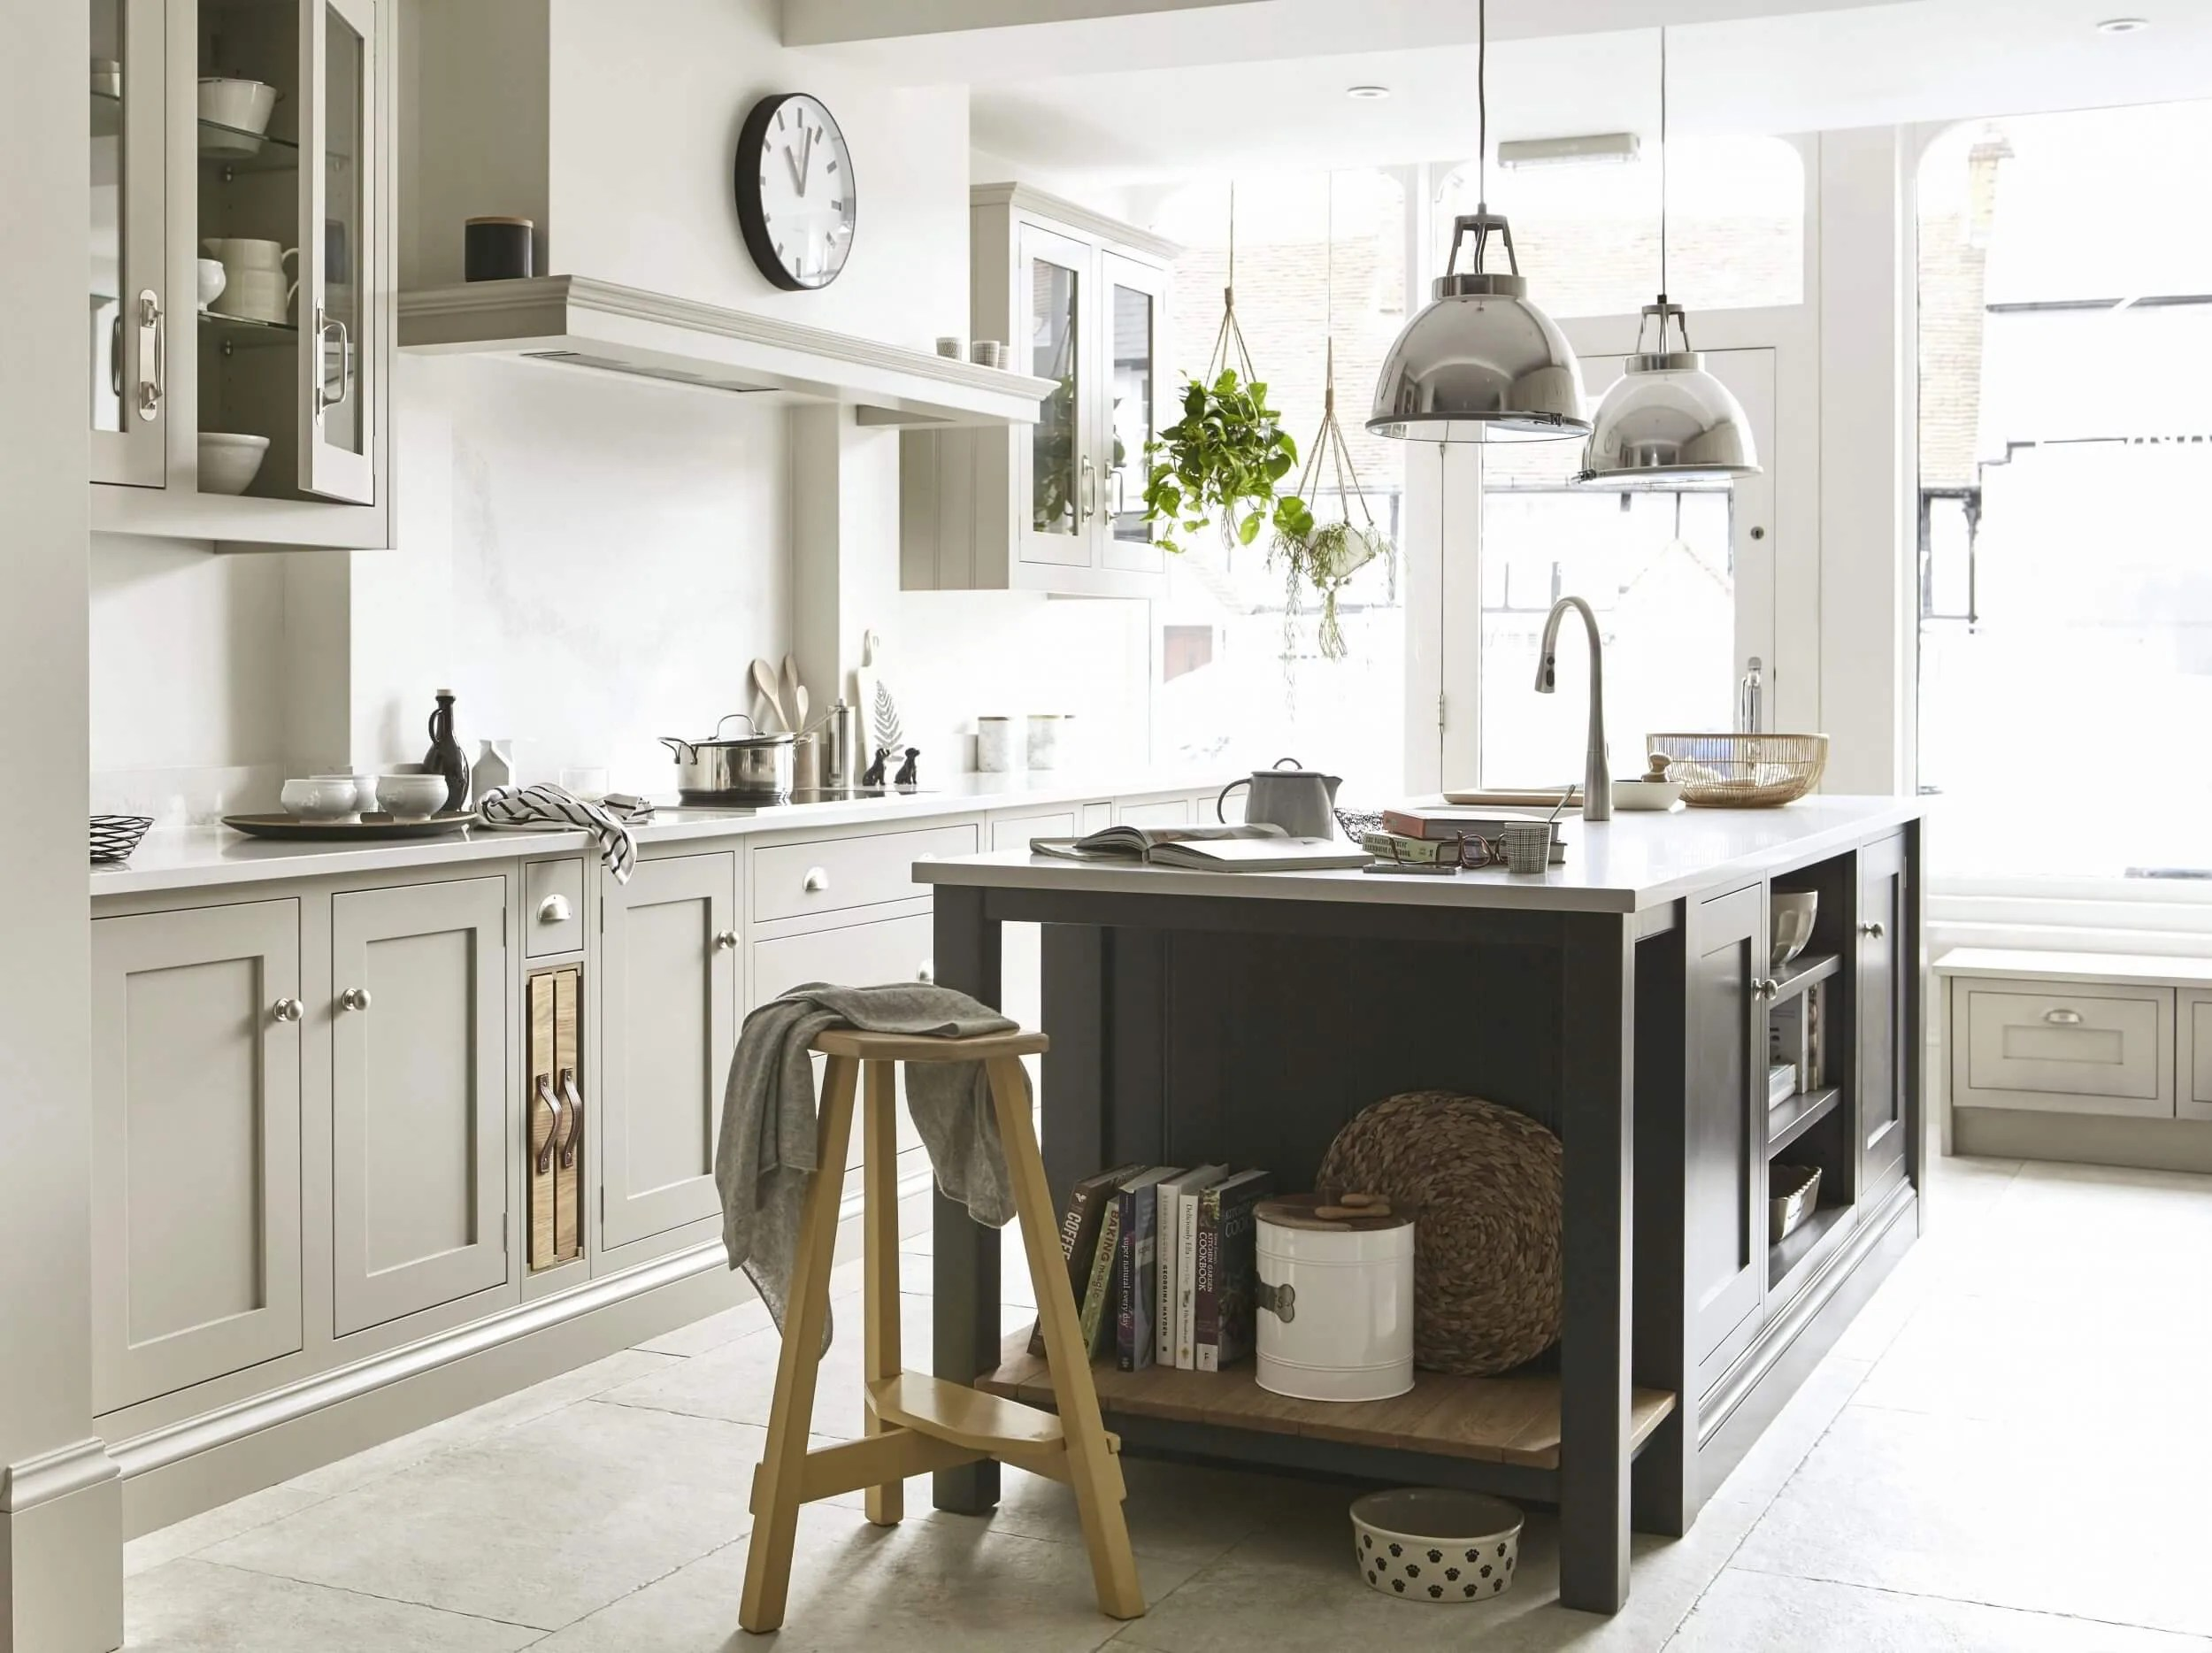 kitchen.com ashley furniture kitchen table and chairs kitchens bedrooms john lewis of hungerford inspired by you crafted us